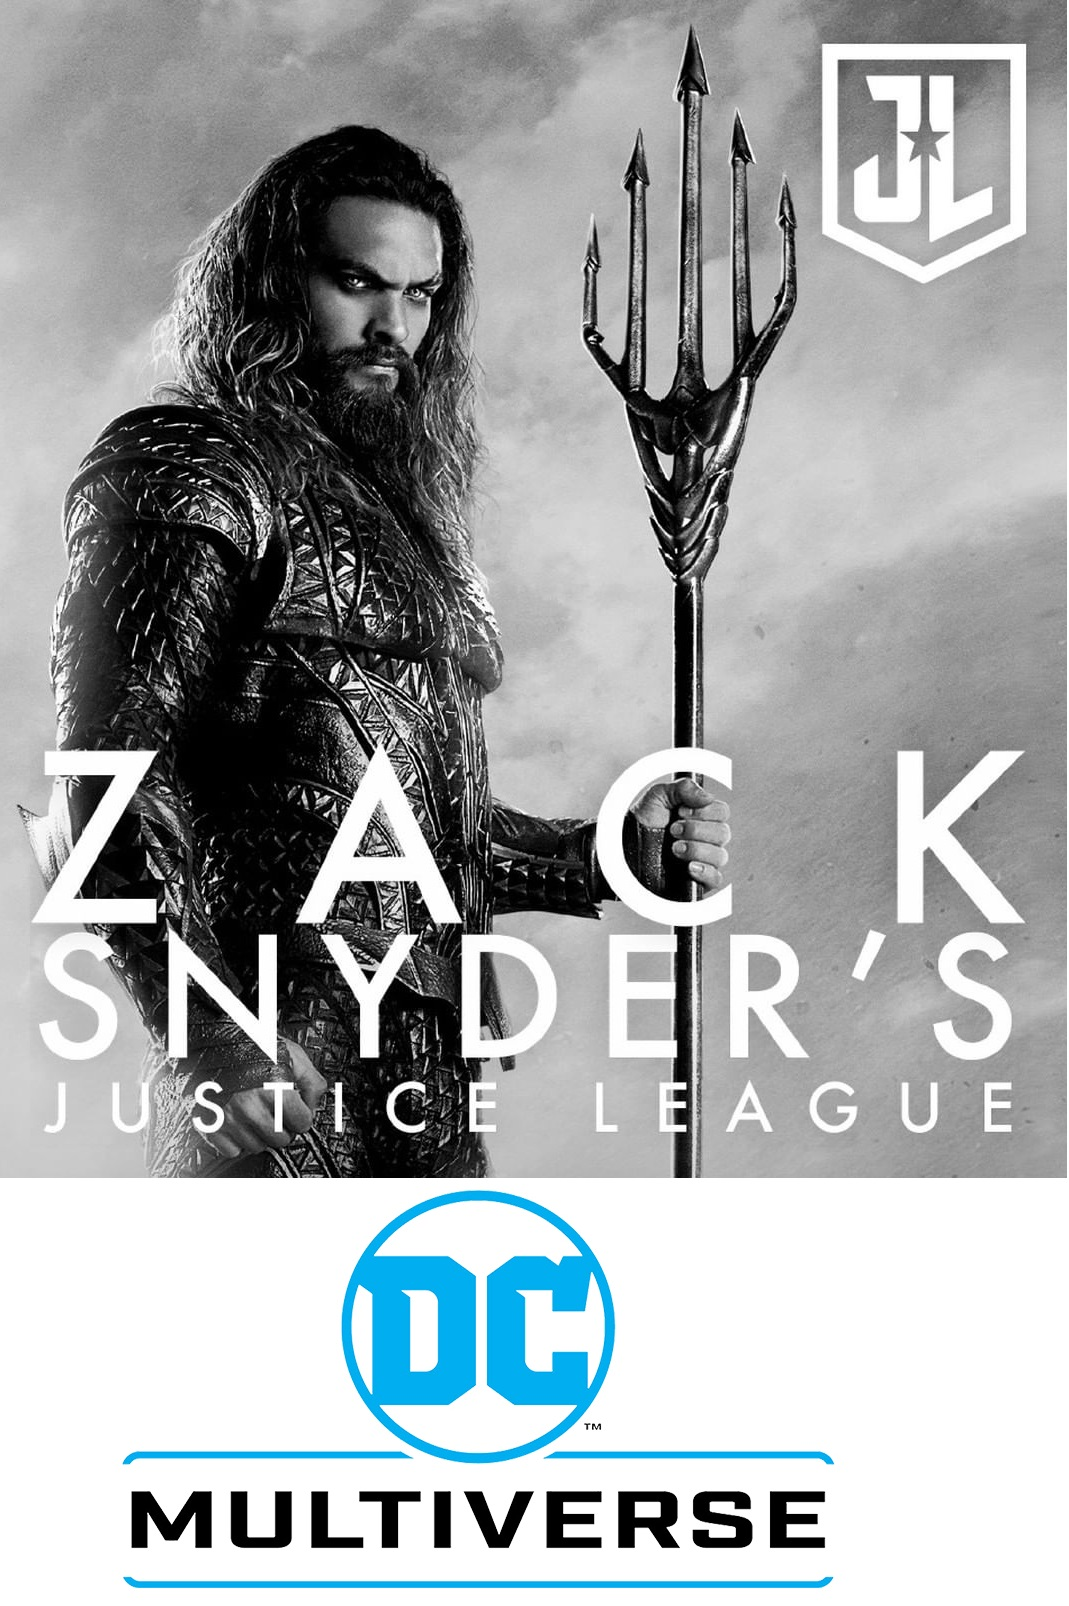 AQUAMAN -  DC ZACK SNYDER JUSTICE LEAGUE McFarlane Toys 7-Inch Action Figure